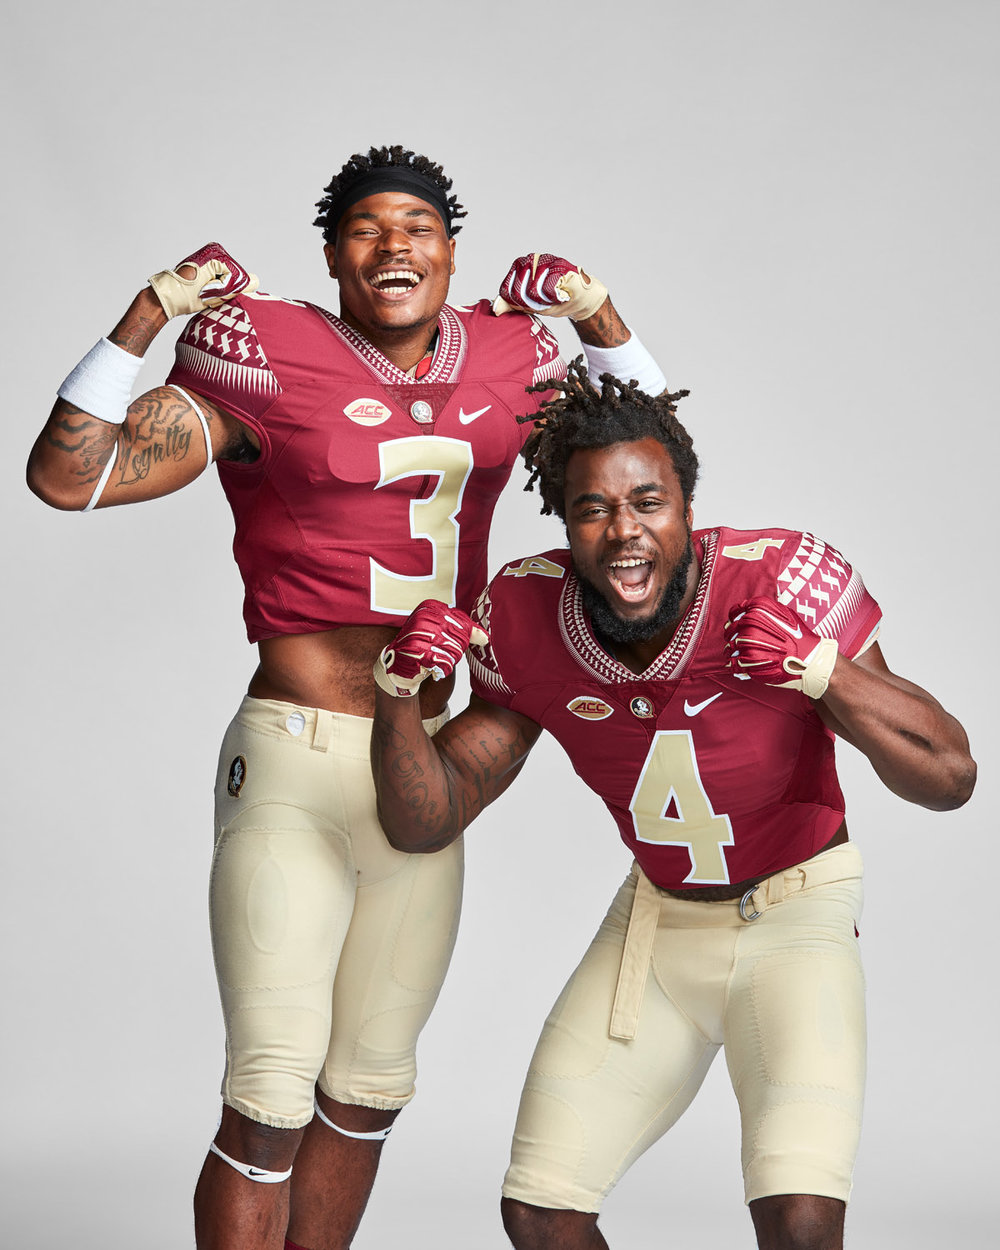 Fsu Football Wallpaper: Dalvin Cook And Derwin James For ESPN The Magazine